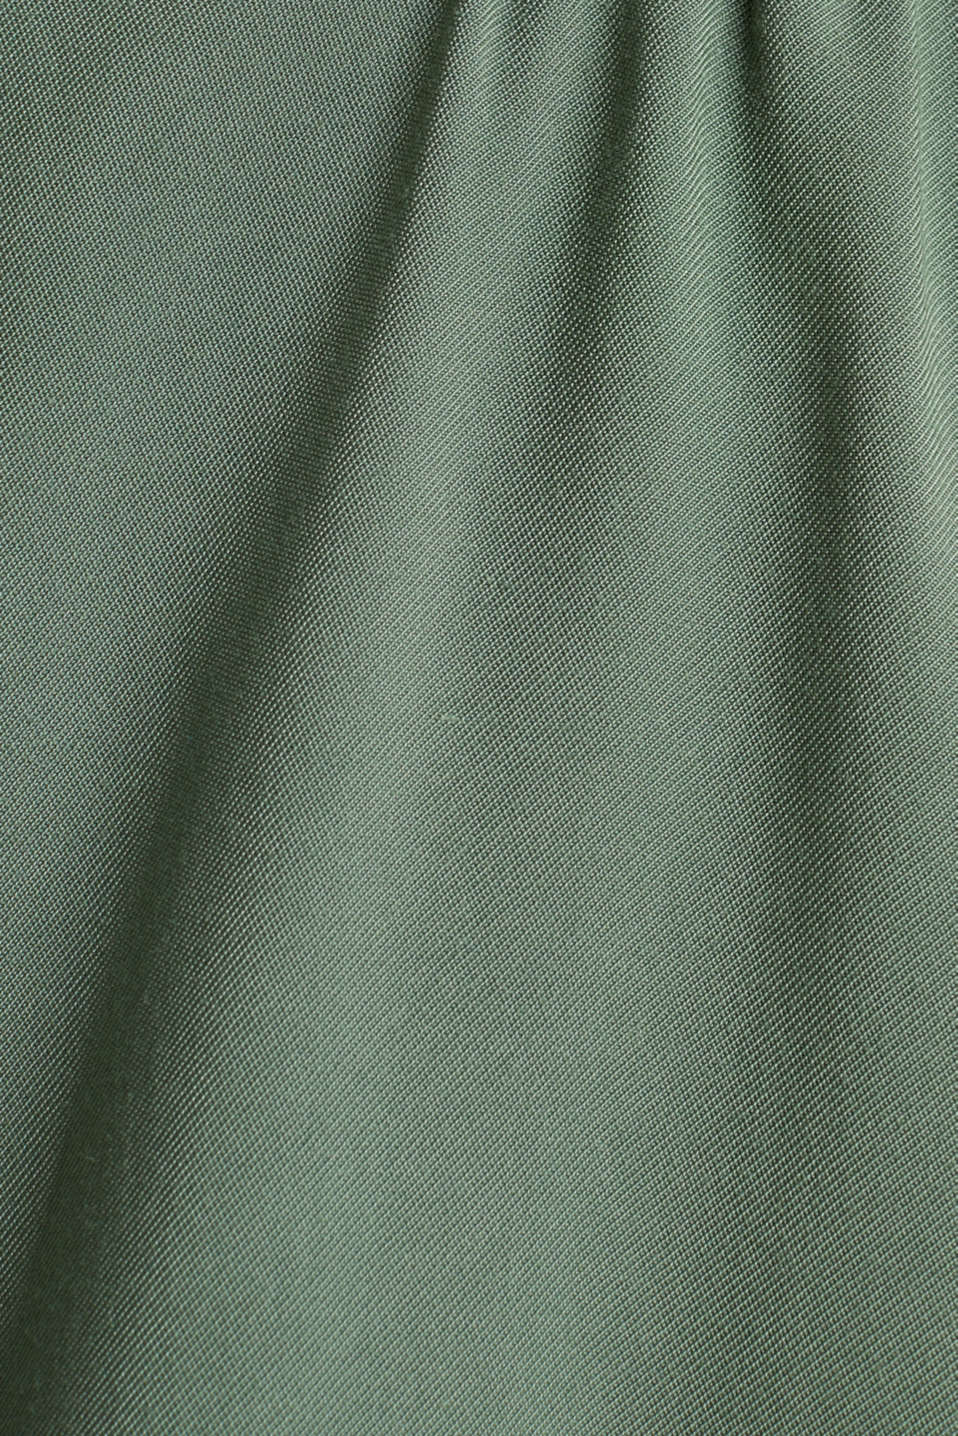 Shirt dress in a utility style, KHAKI GREEN, detail image number 4